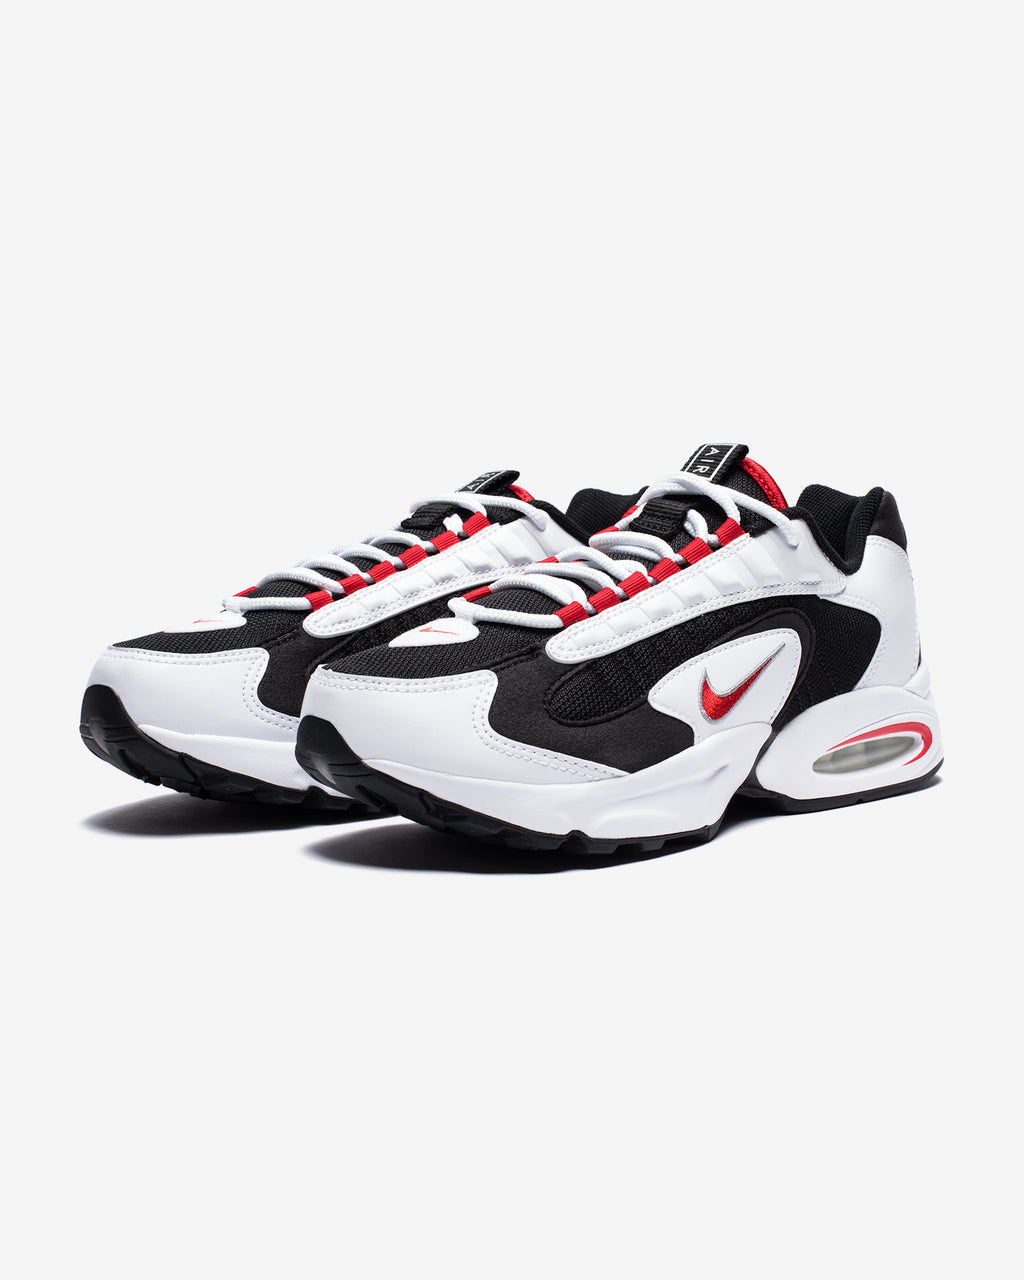 AIR MAX TRIAX 96 - WHITE/UNIVERSITYRED/BLACK/SILVER